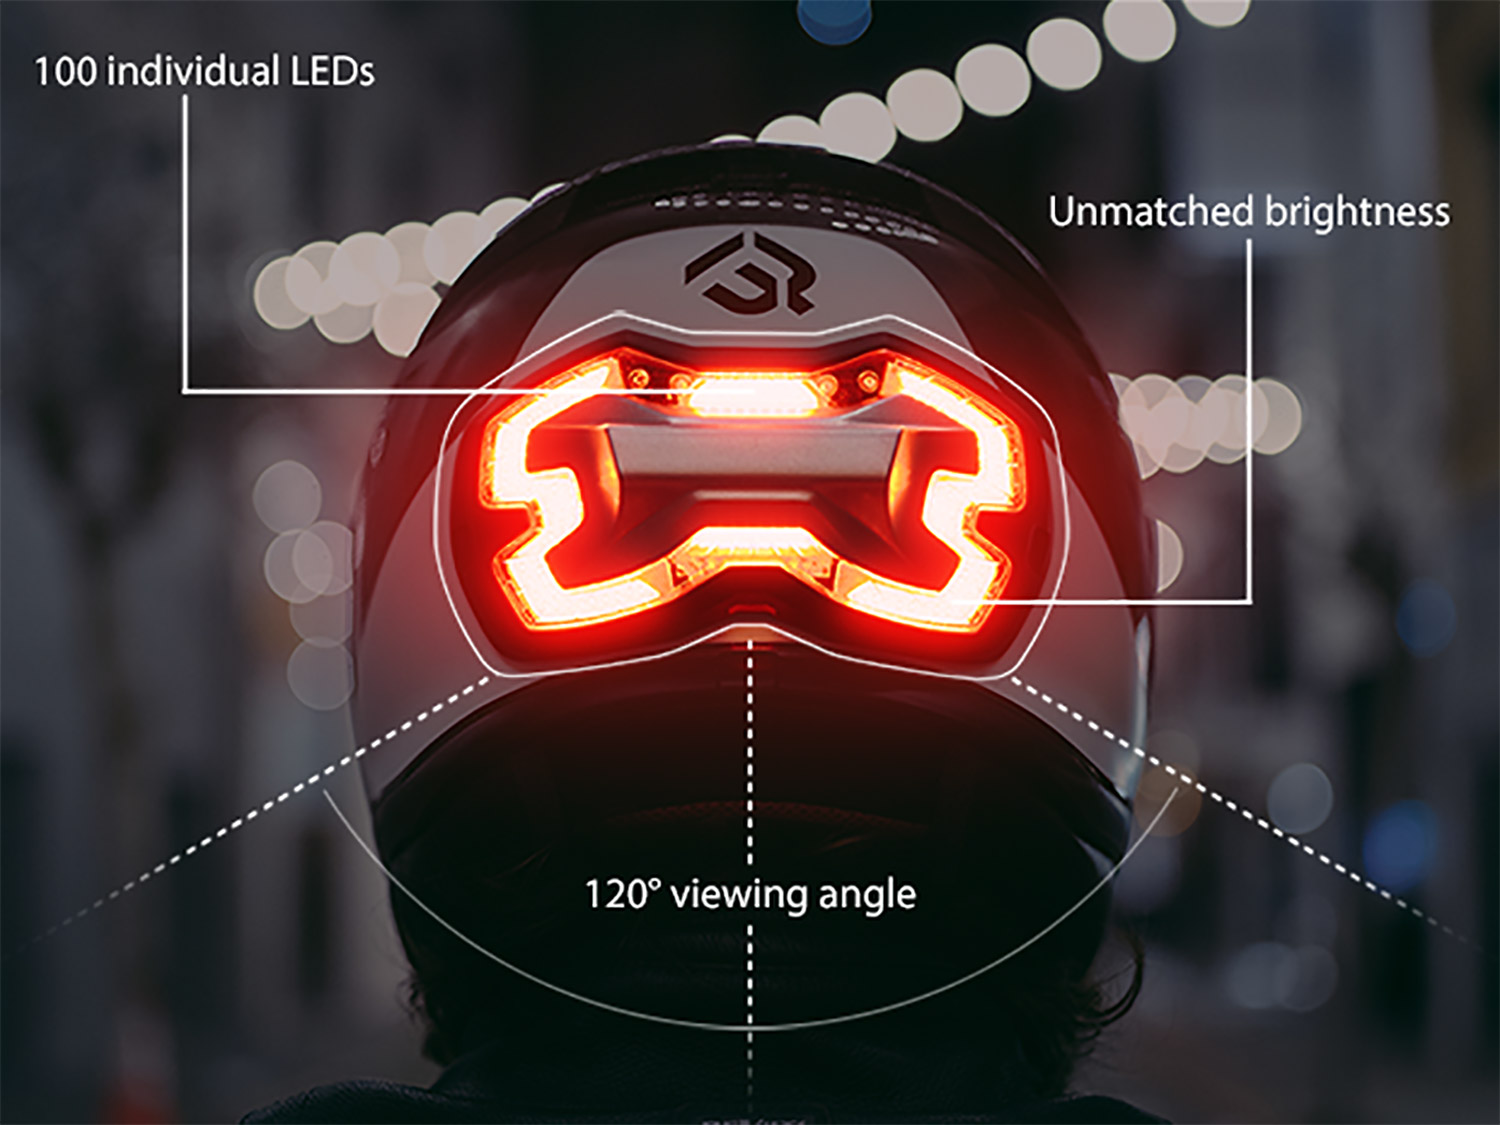 Brakefree The Smart Brake Light For Motorcyclists